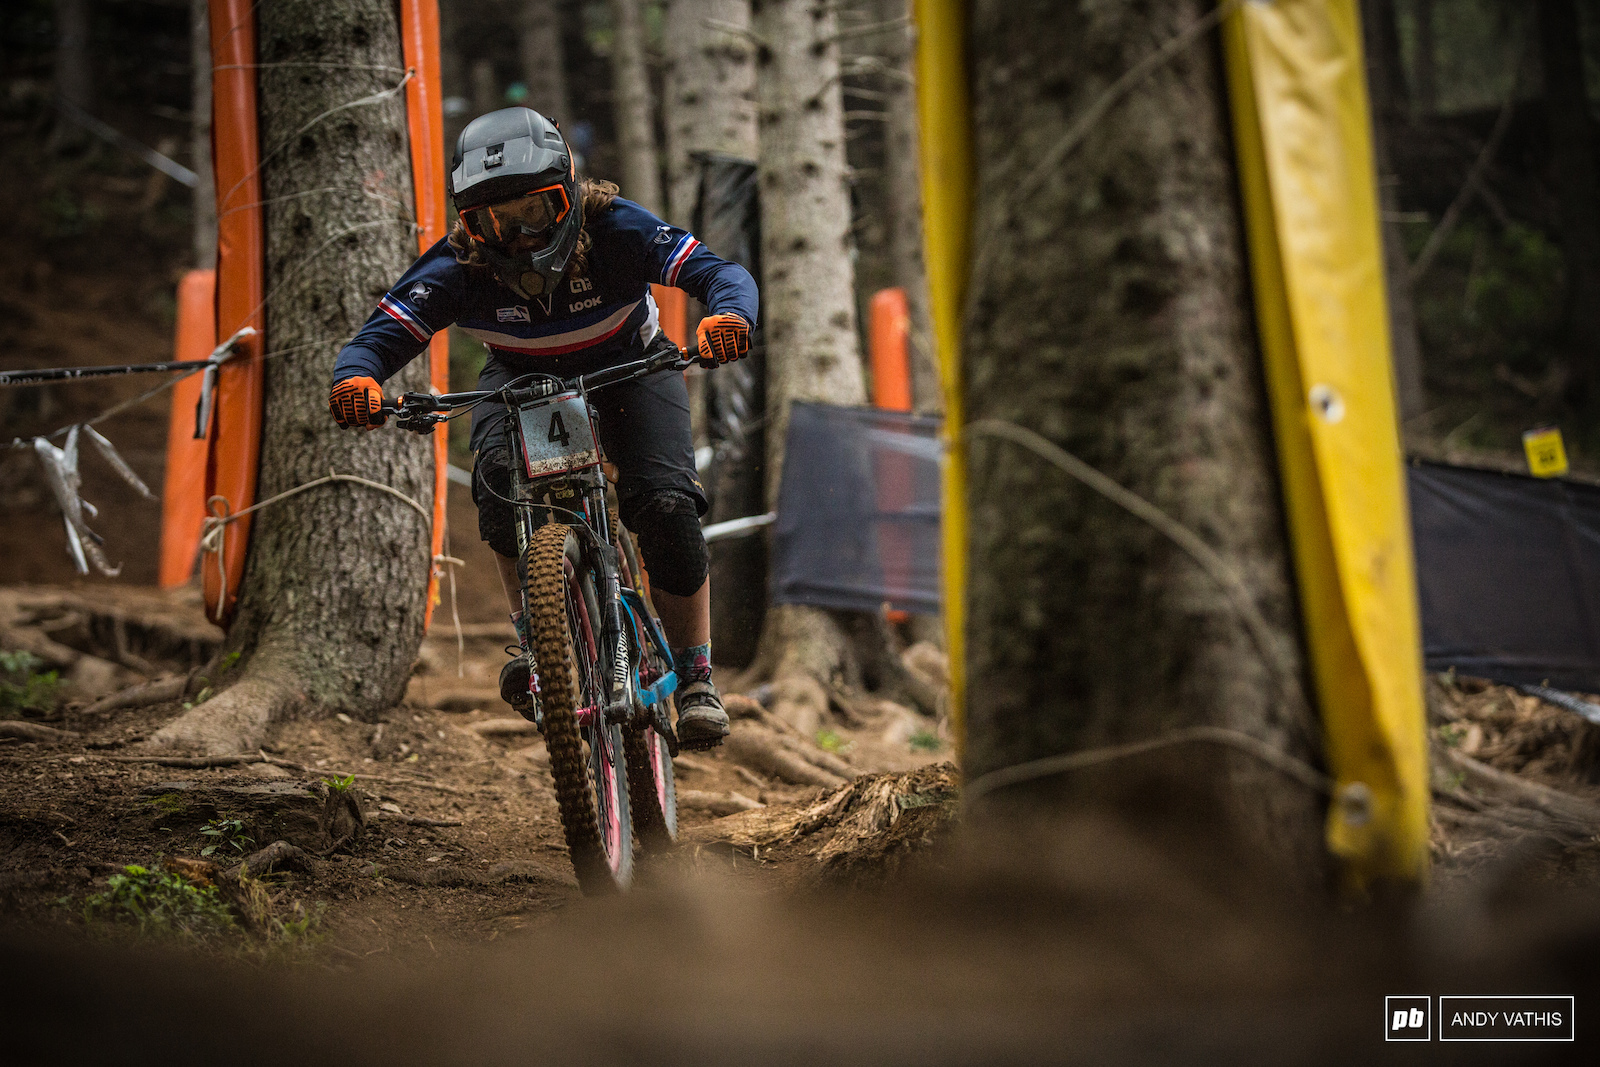 Nastasia Gimenez managed a second place finish yet still almost 30 seconds off from Vali Holl s time.